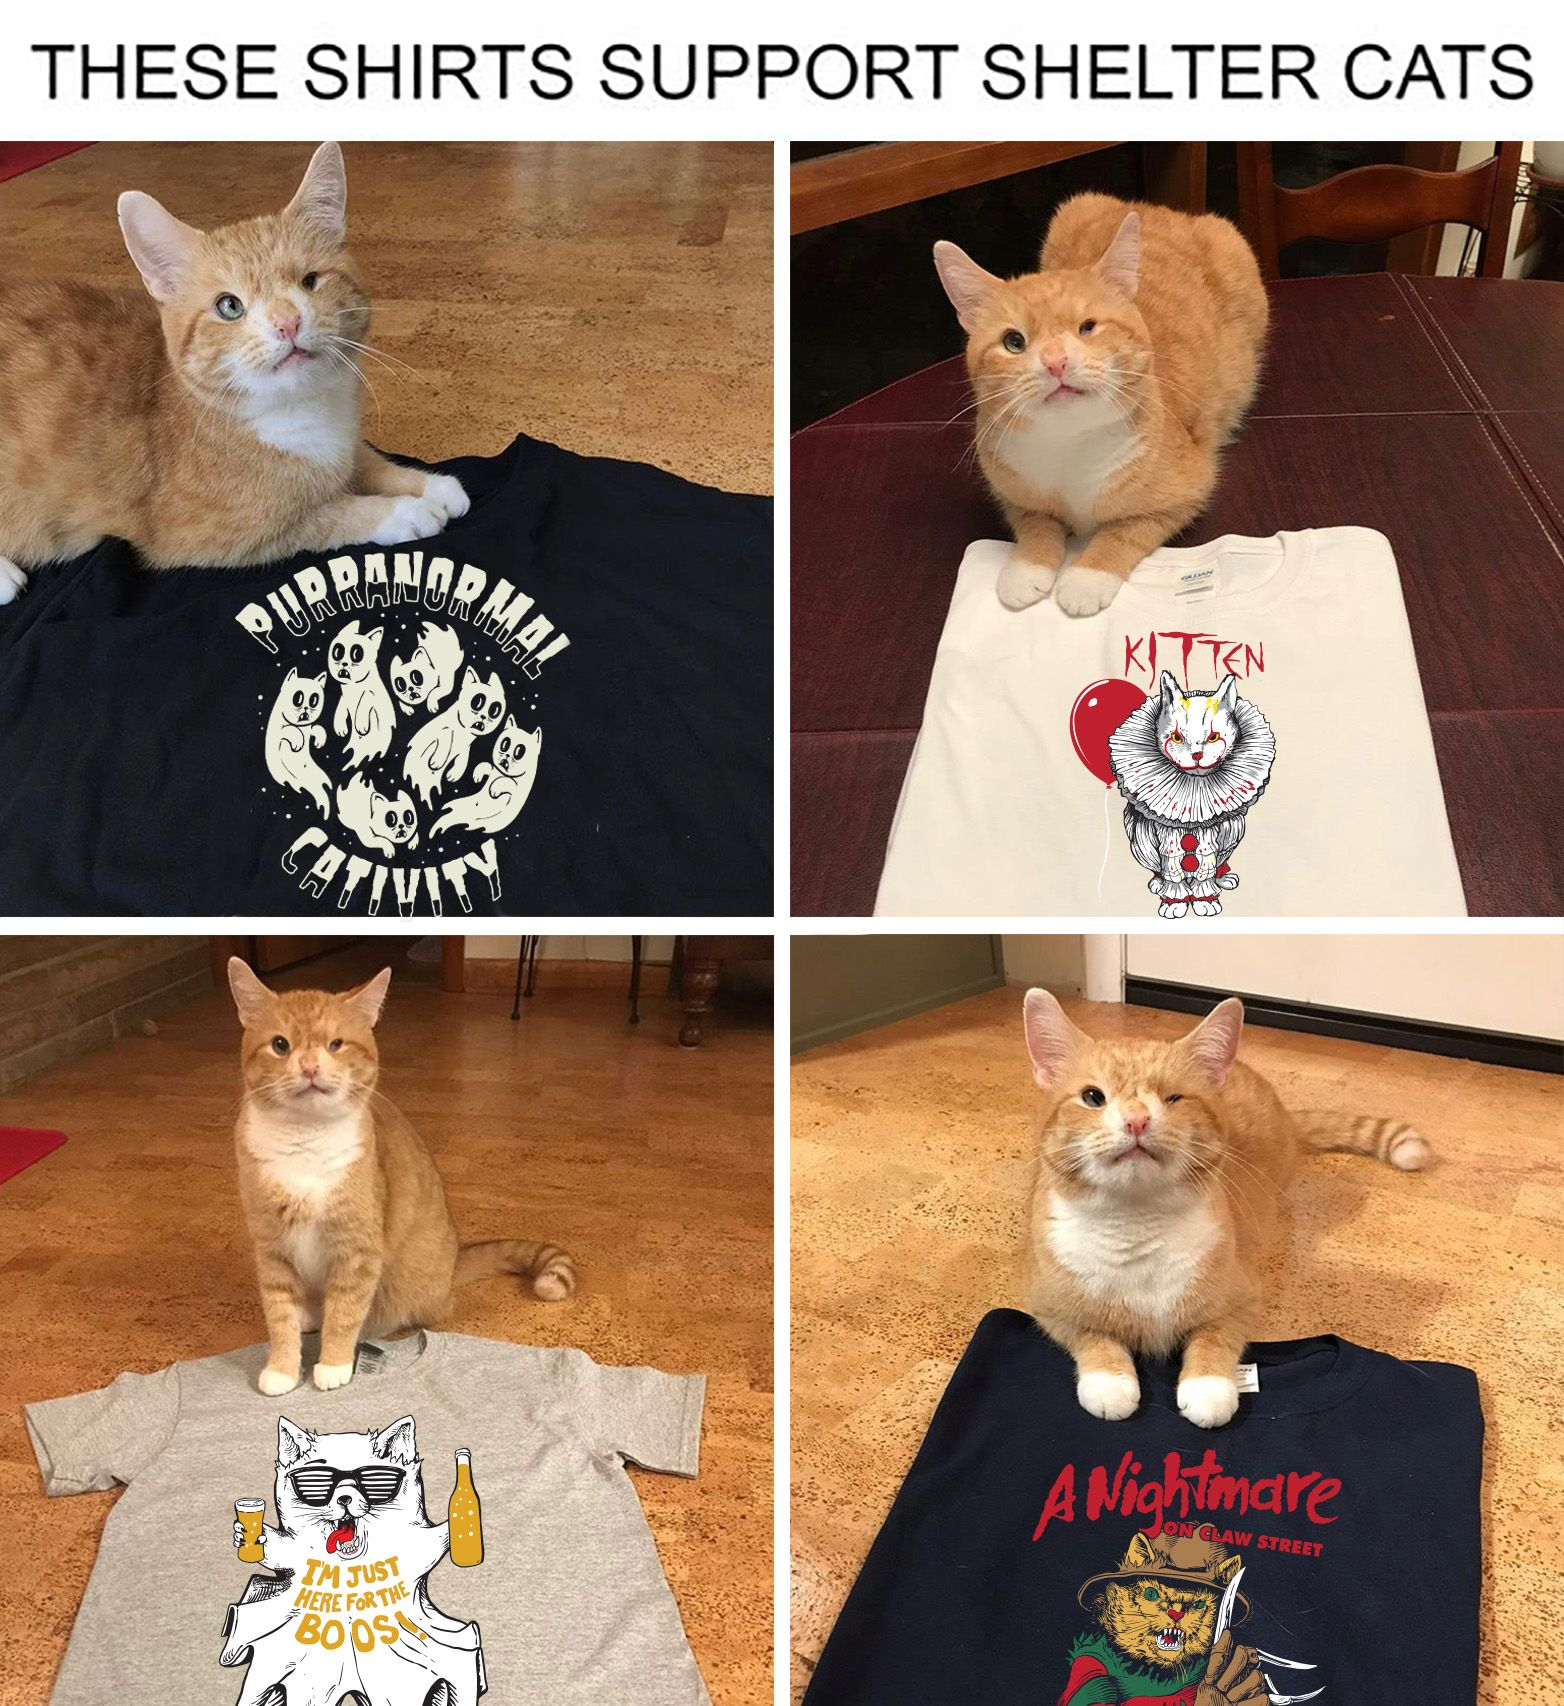 Cute And Funny Halloween Cat T Shirts In 2020 Cute Baby Animals Cute Little Animals Cute Animals